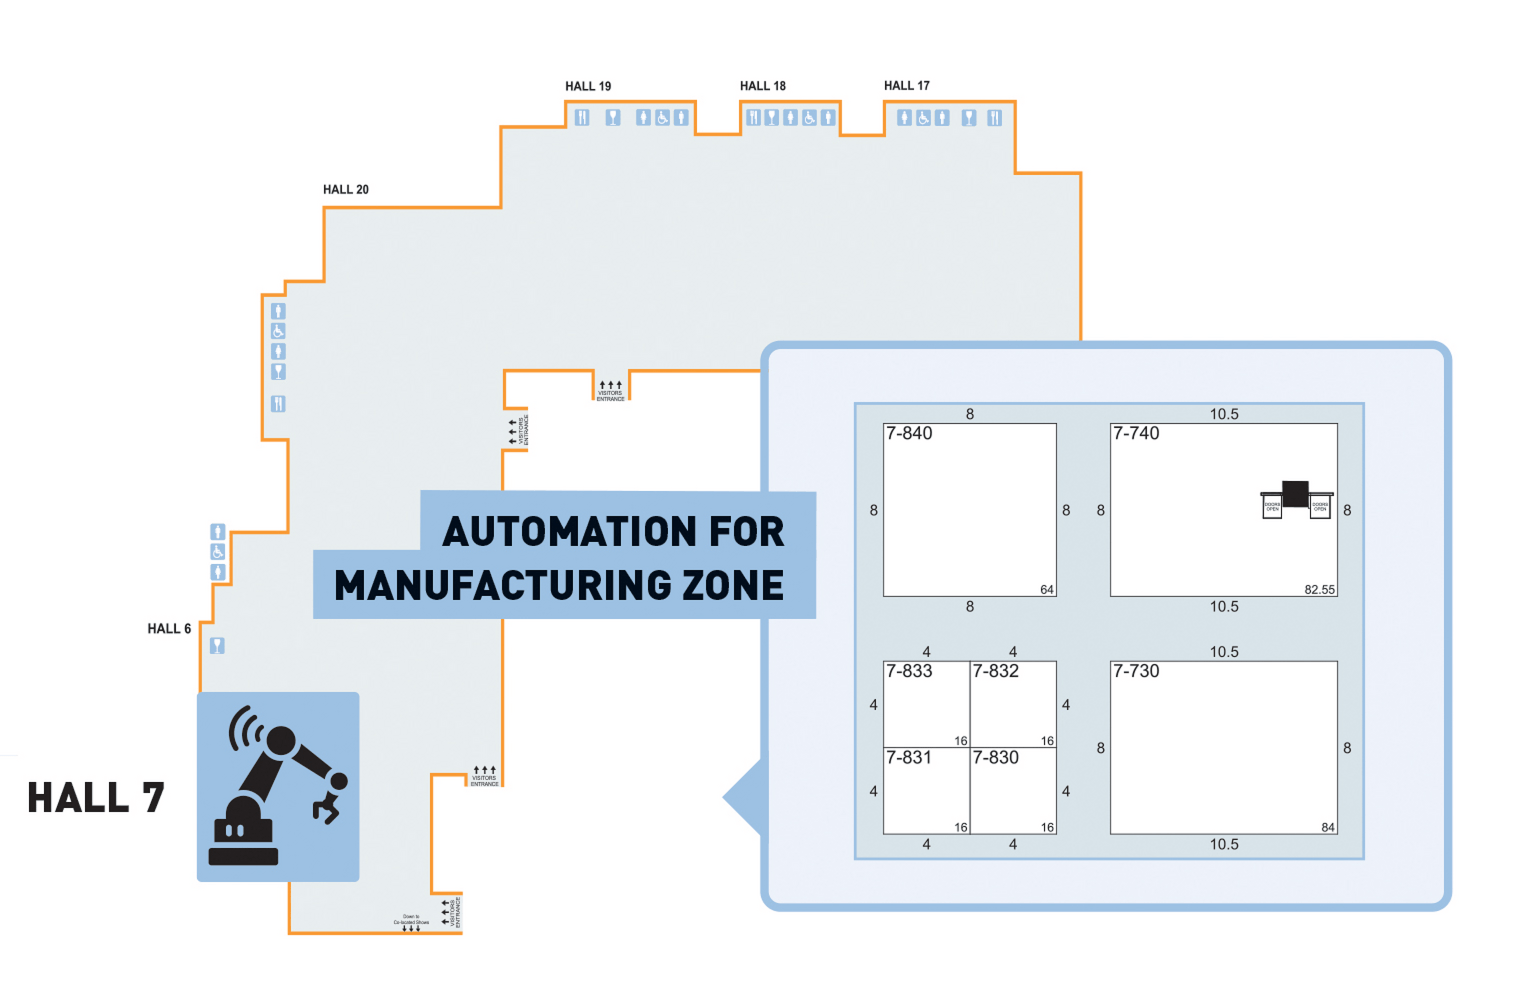 Hall 7 Automation Zone